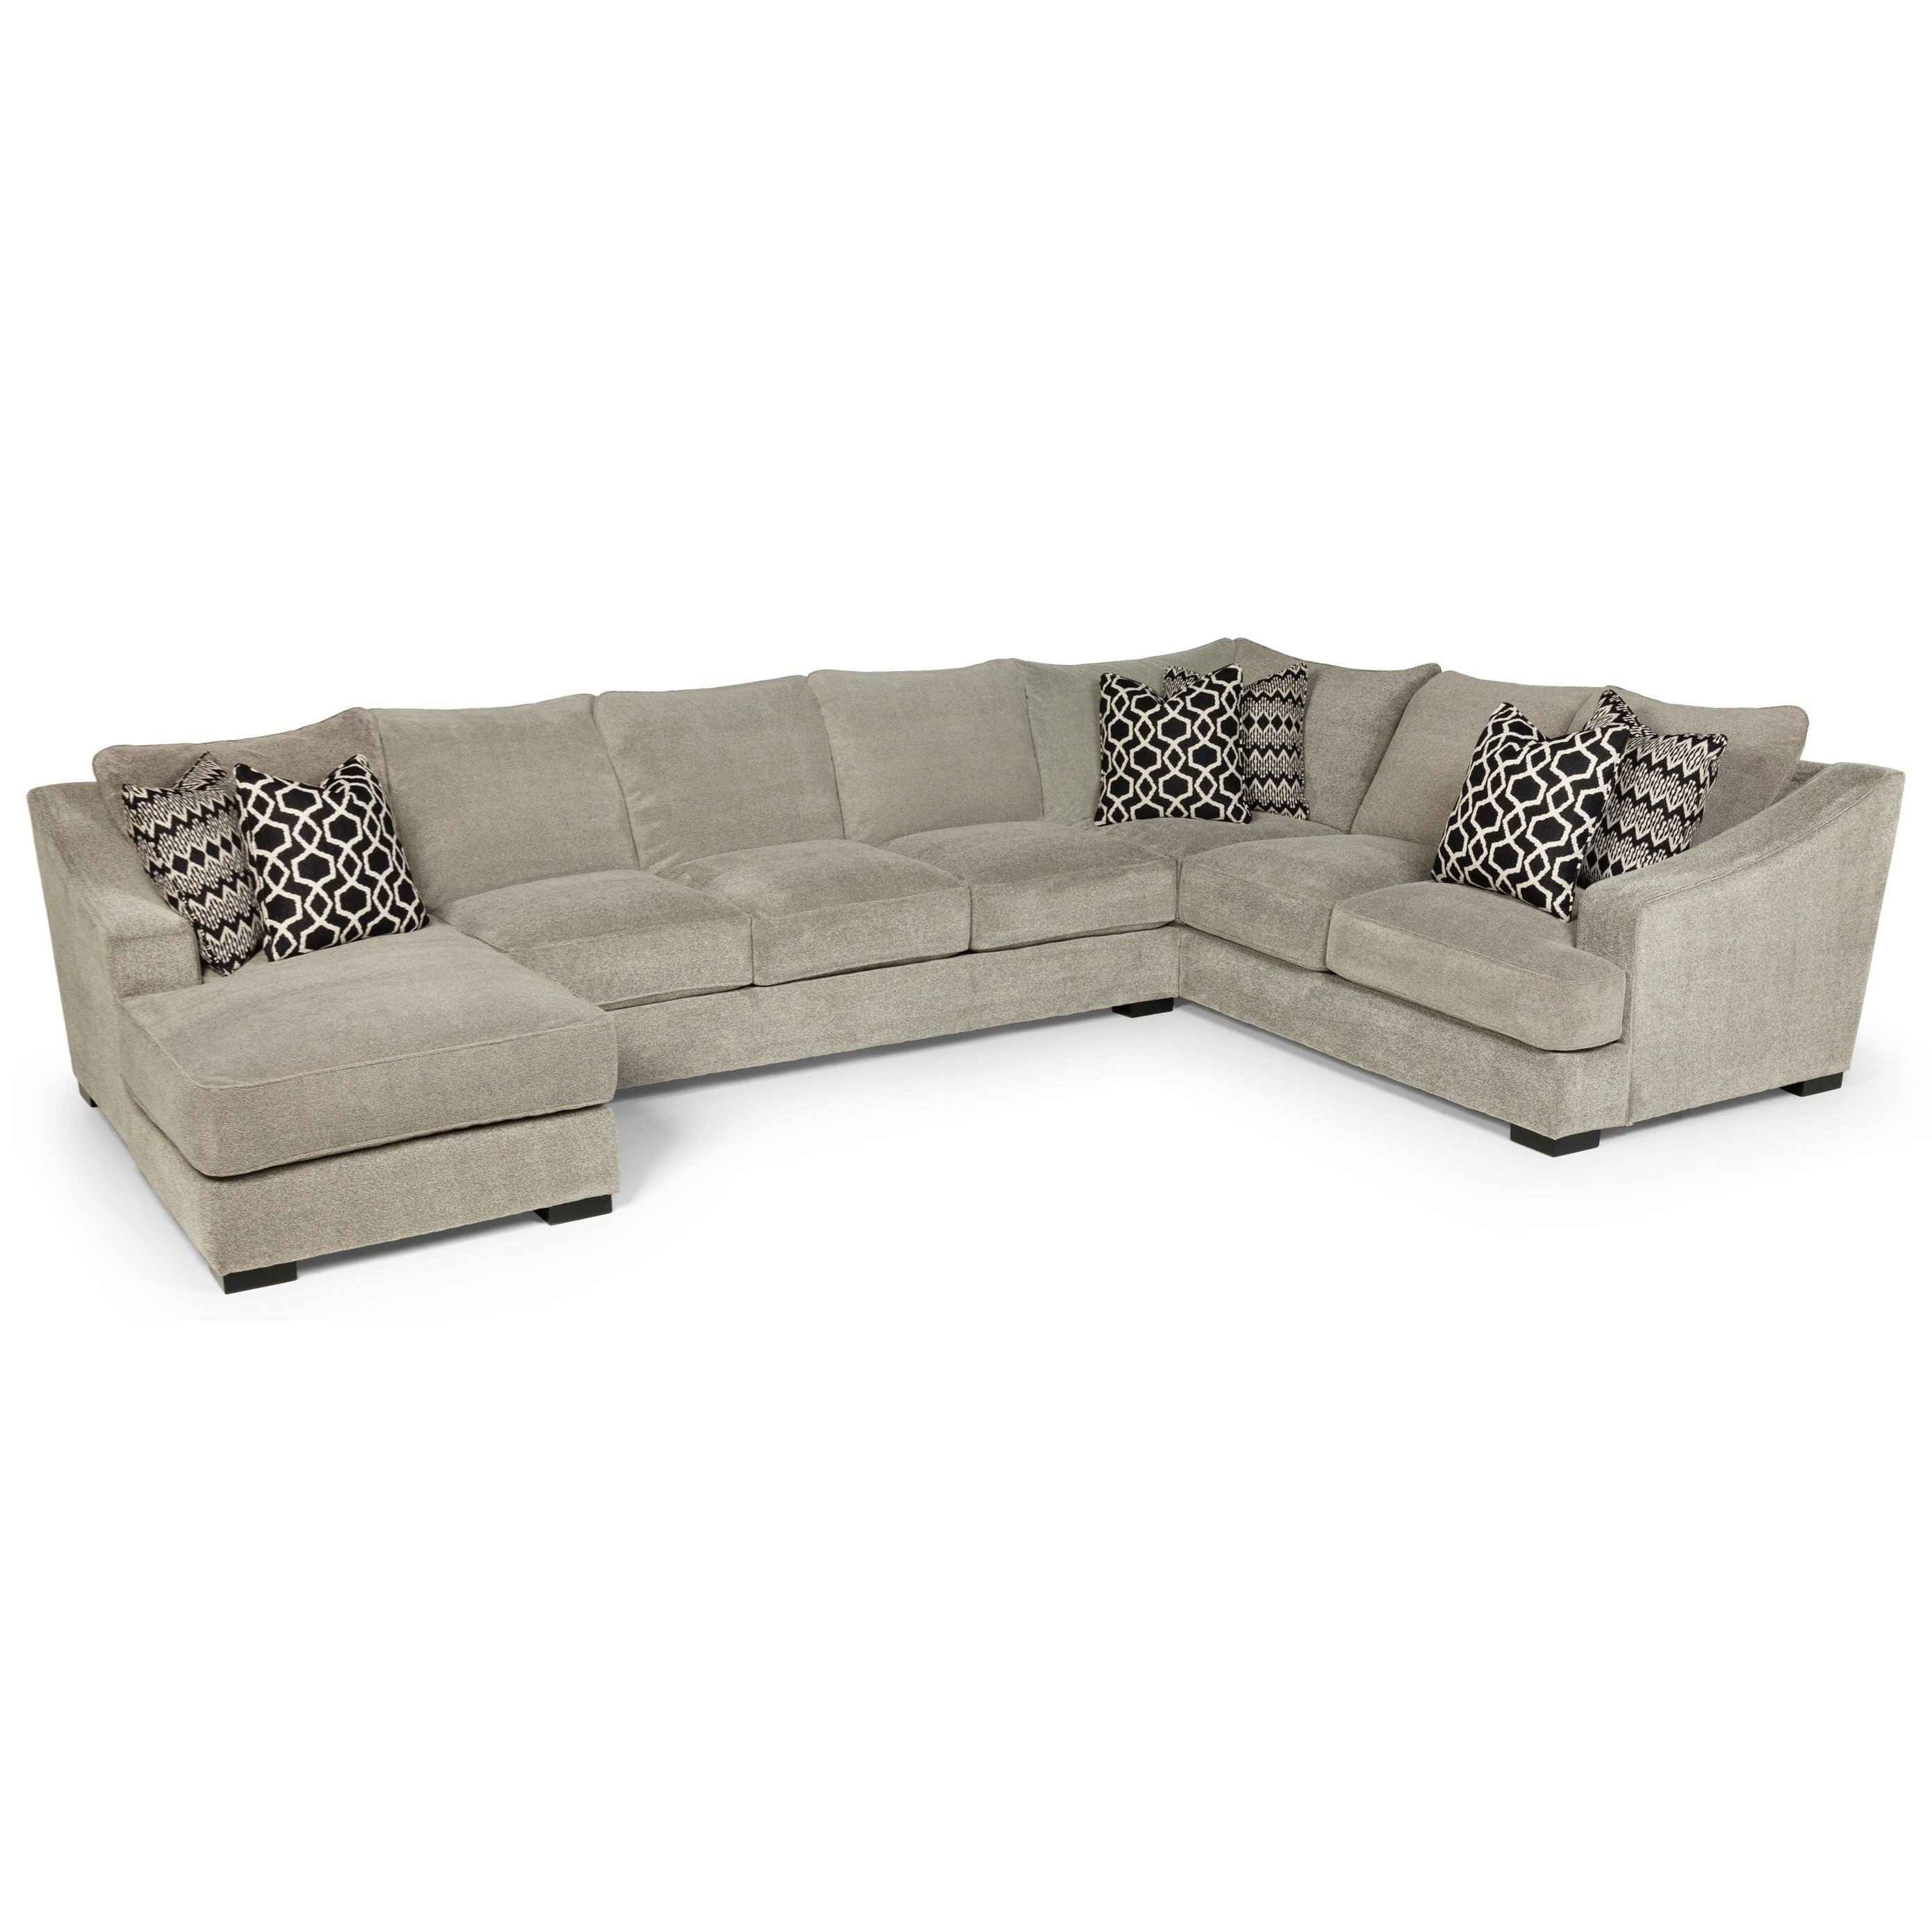 Eugene Oregon Sectional Sofas Intended For 2018 Stanton 338 Casual Three Piece Sectional Sofa With Deep Seats (View 5 of 15)